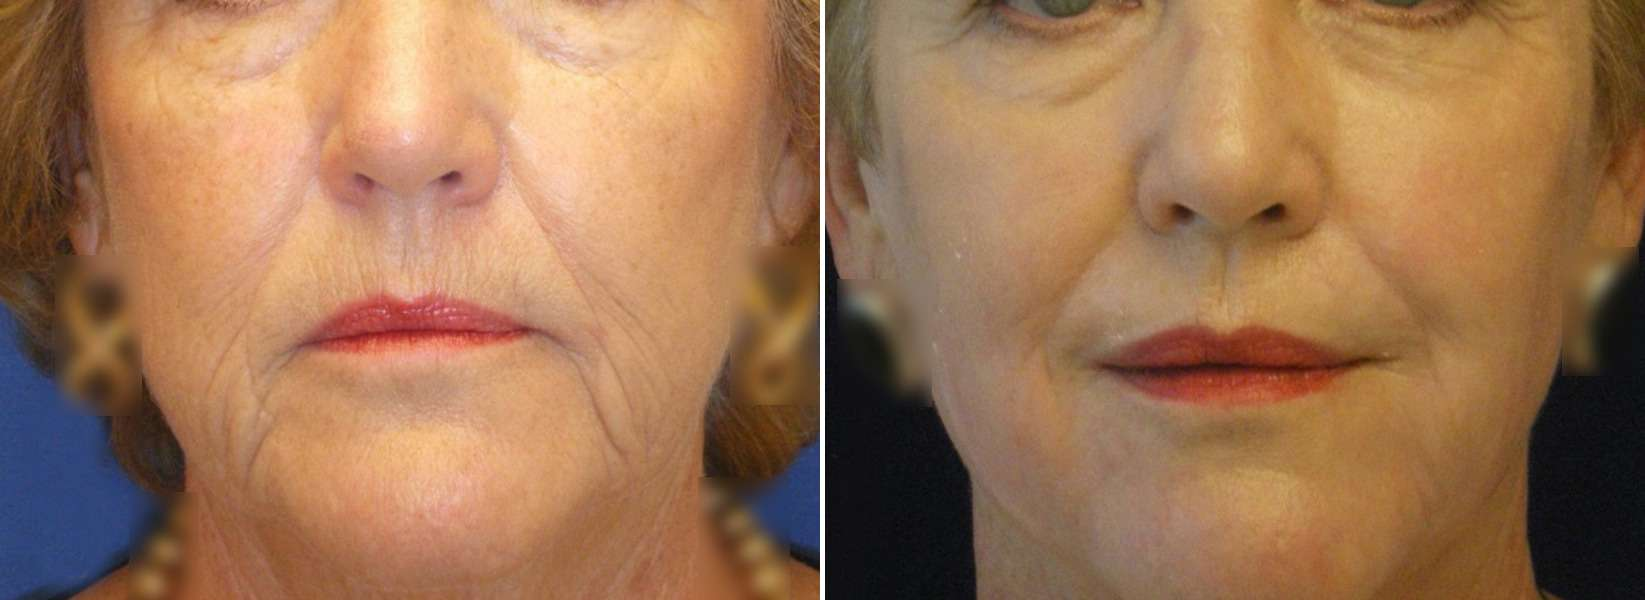 Before and After Photos in , , Sub-nasal Lip Lift